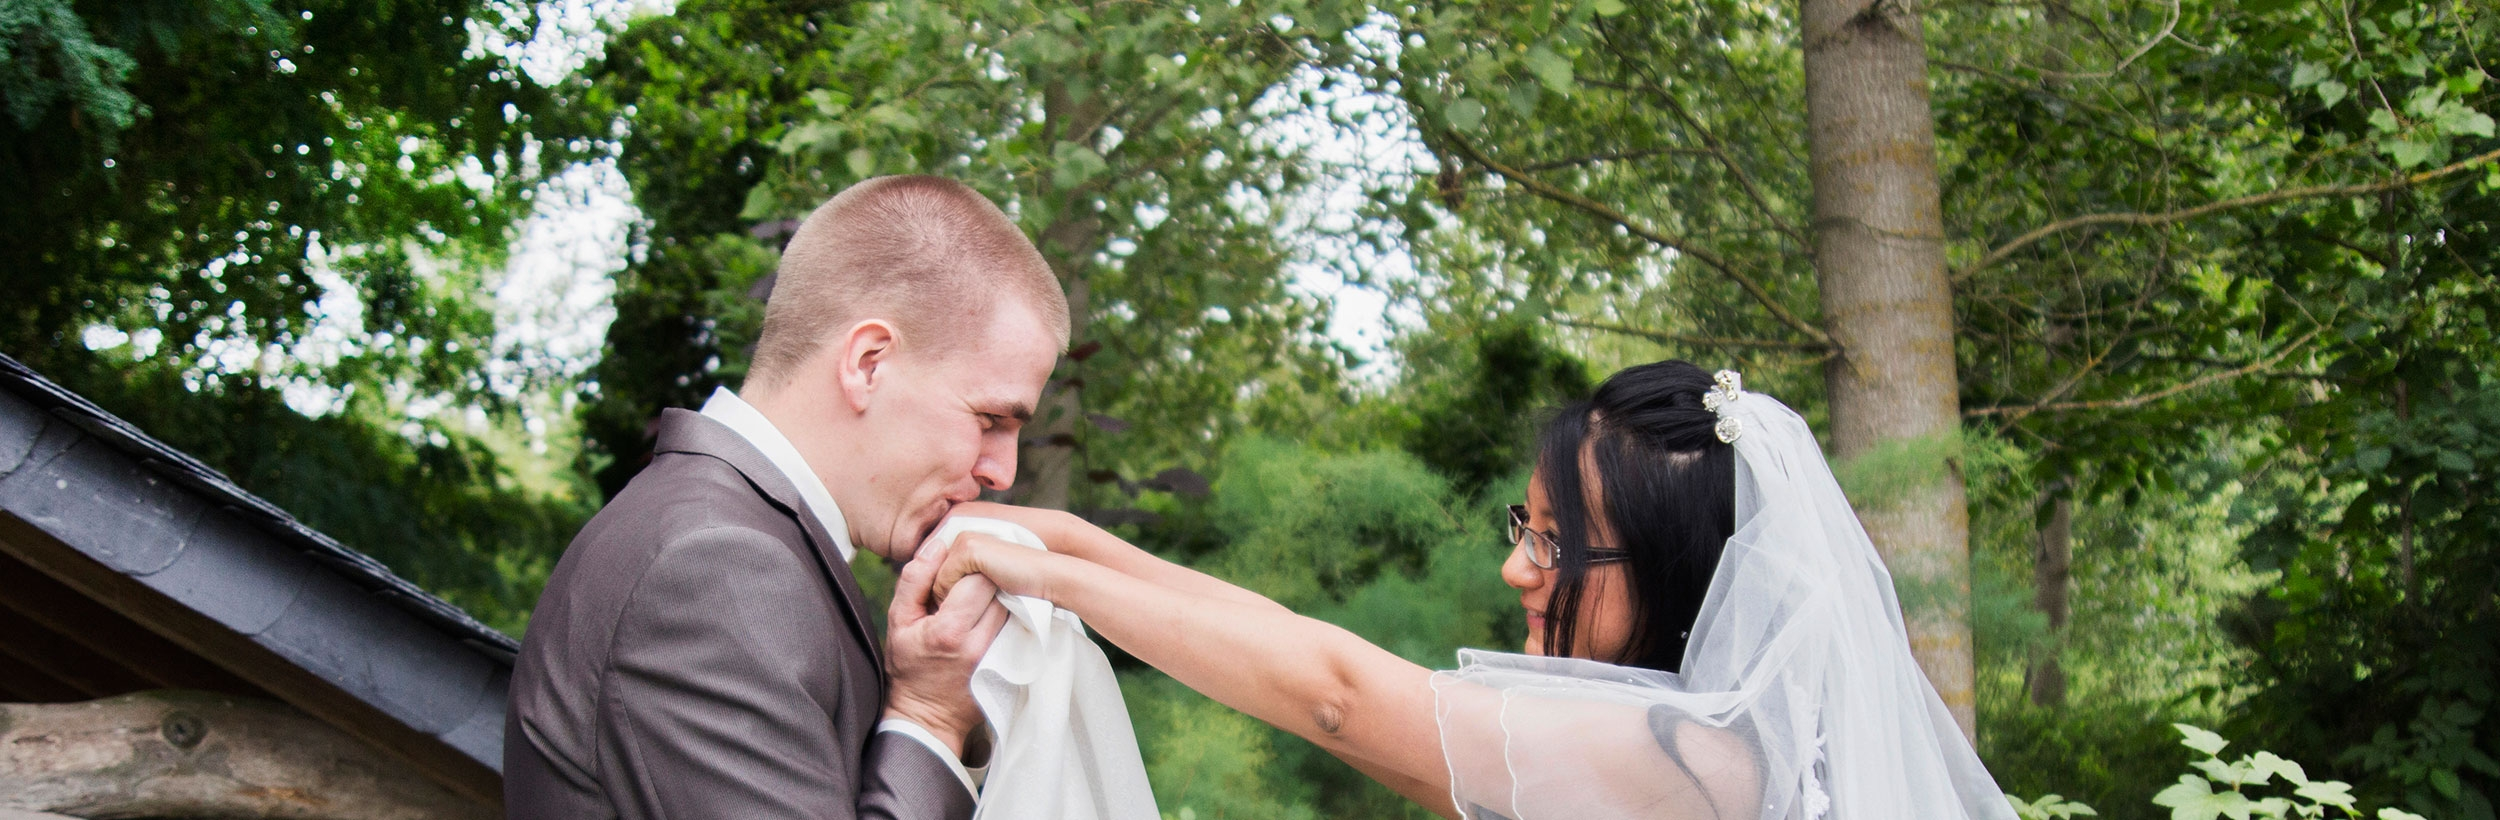 particuliers-mariages-oui-mayingcyril-pagetop